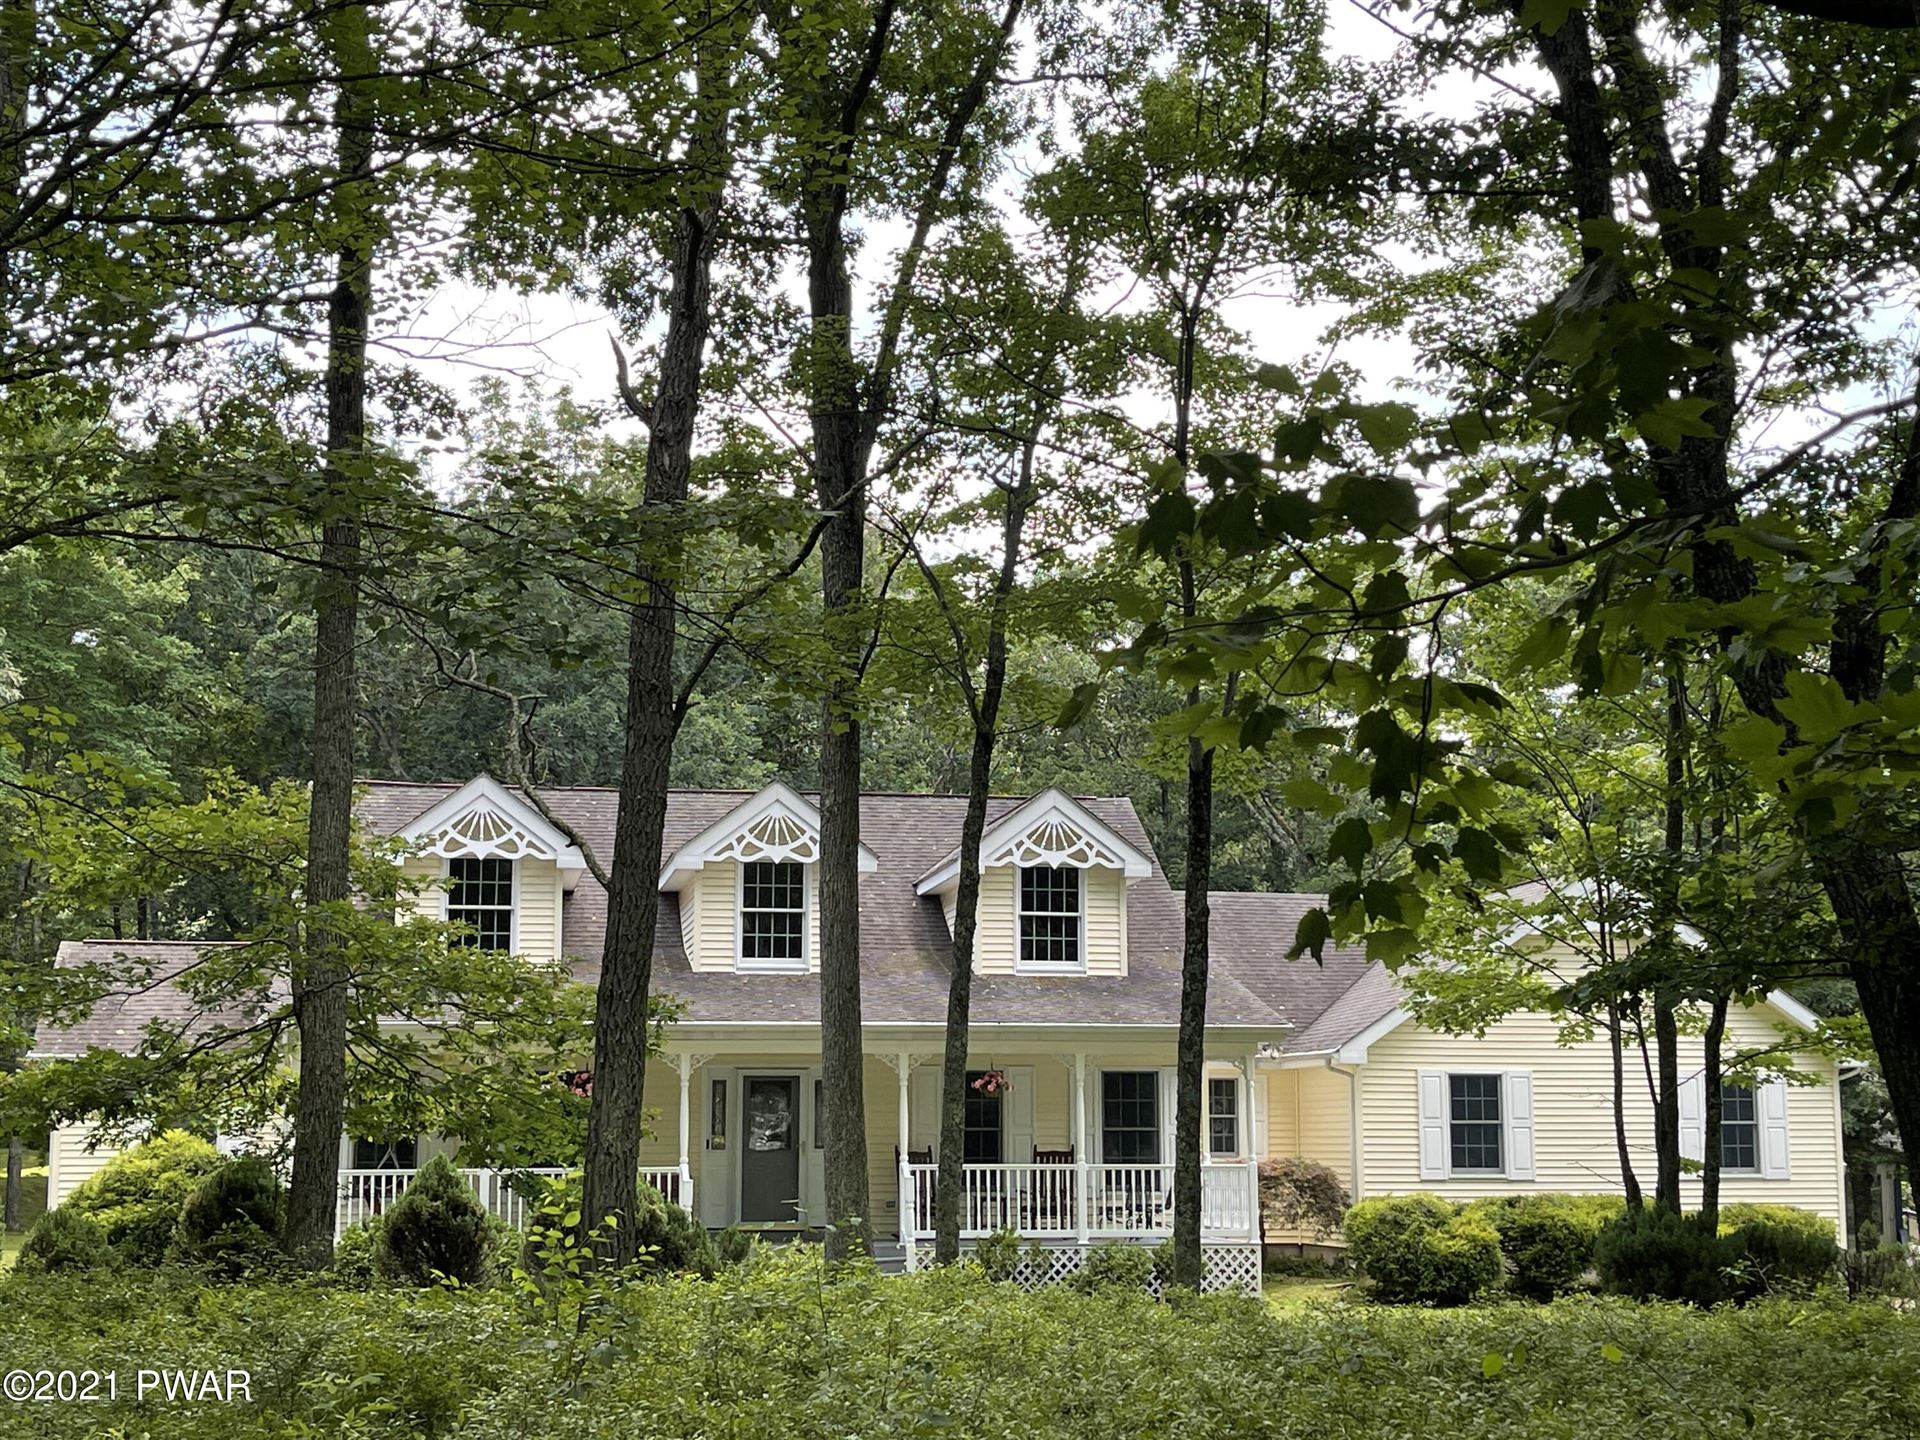 Photo of 110 Gaskin Dr, Lords Valley, PA 18428 (MLS # 21-2759)